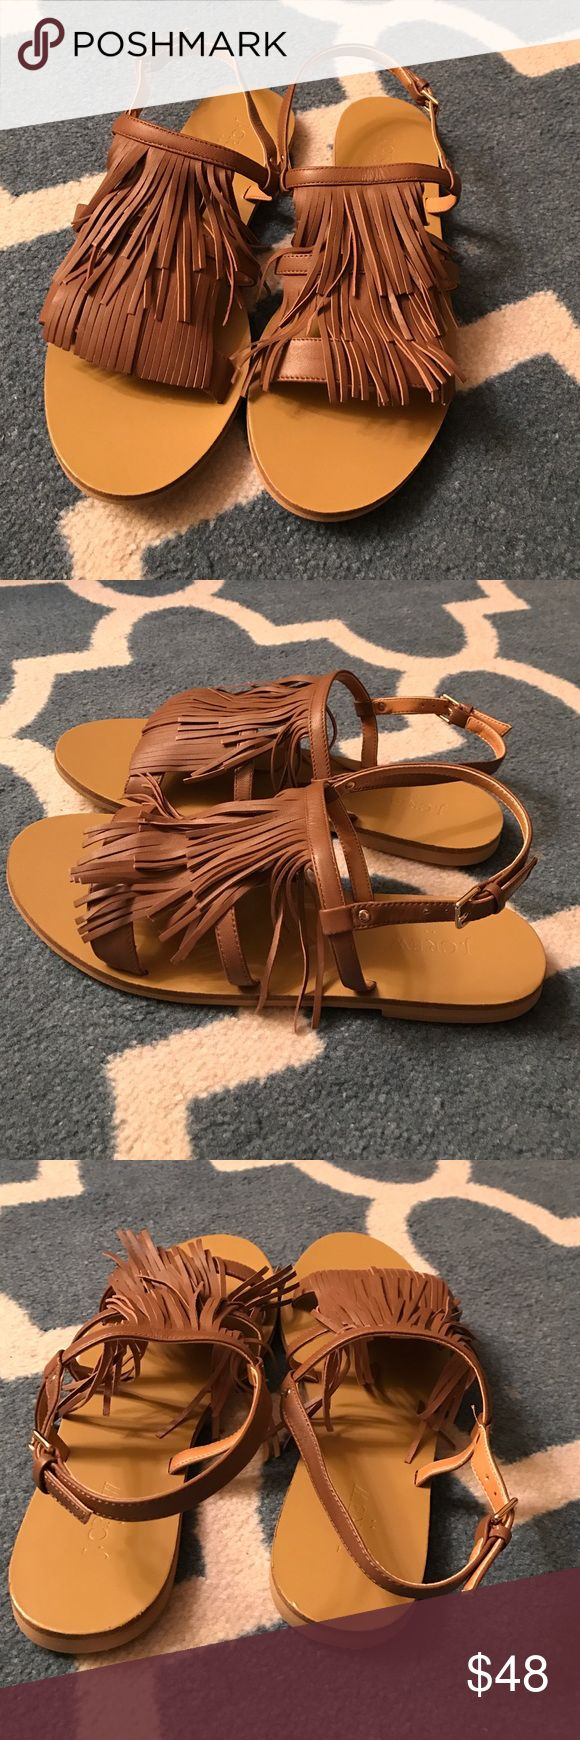 🎊 SALE 🎊 J.Crew Factory Fringe Leather Sandal 🎊 SALE - Price Firm 🎊 Adorable tan fringe sandals from J.Crew Factory. The color is neutral enough to go with most outfits and the fringe adds a little excitement! Very comfortable. Great with shorts, a sundress, and even jeans. J.Crew Factory Shoes Sandals